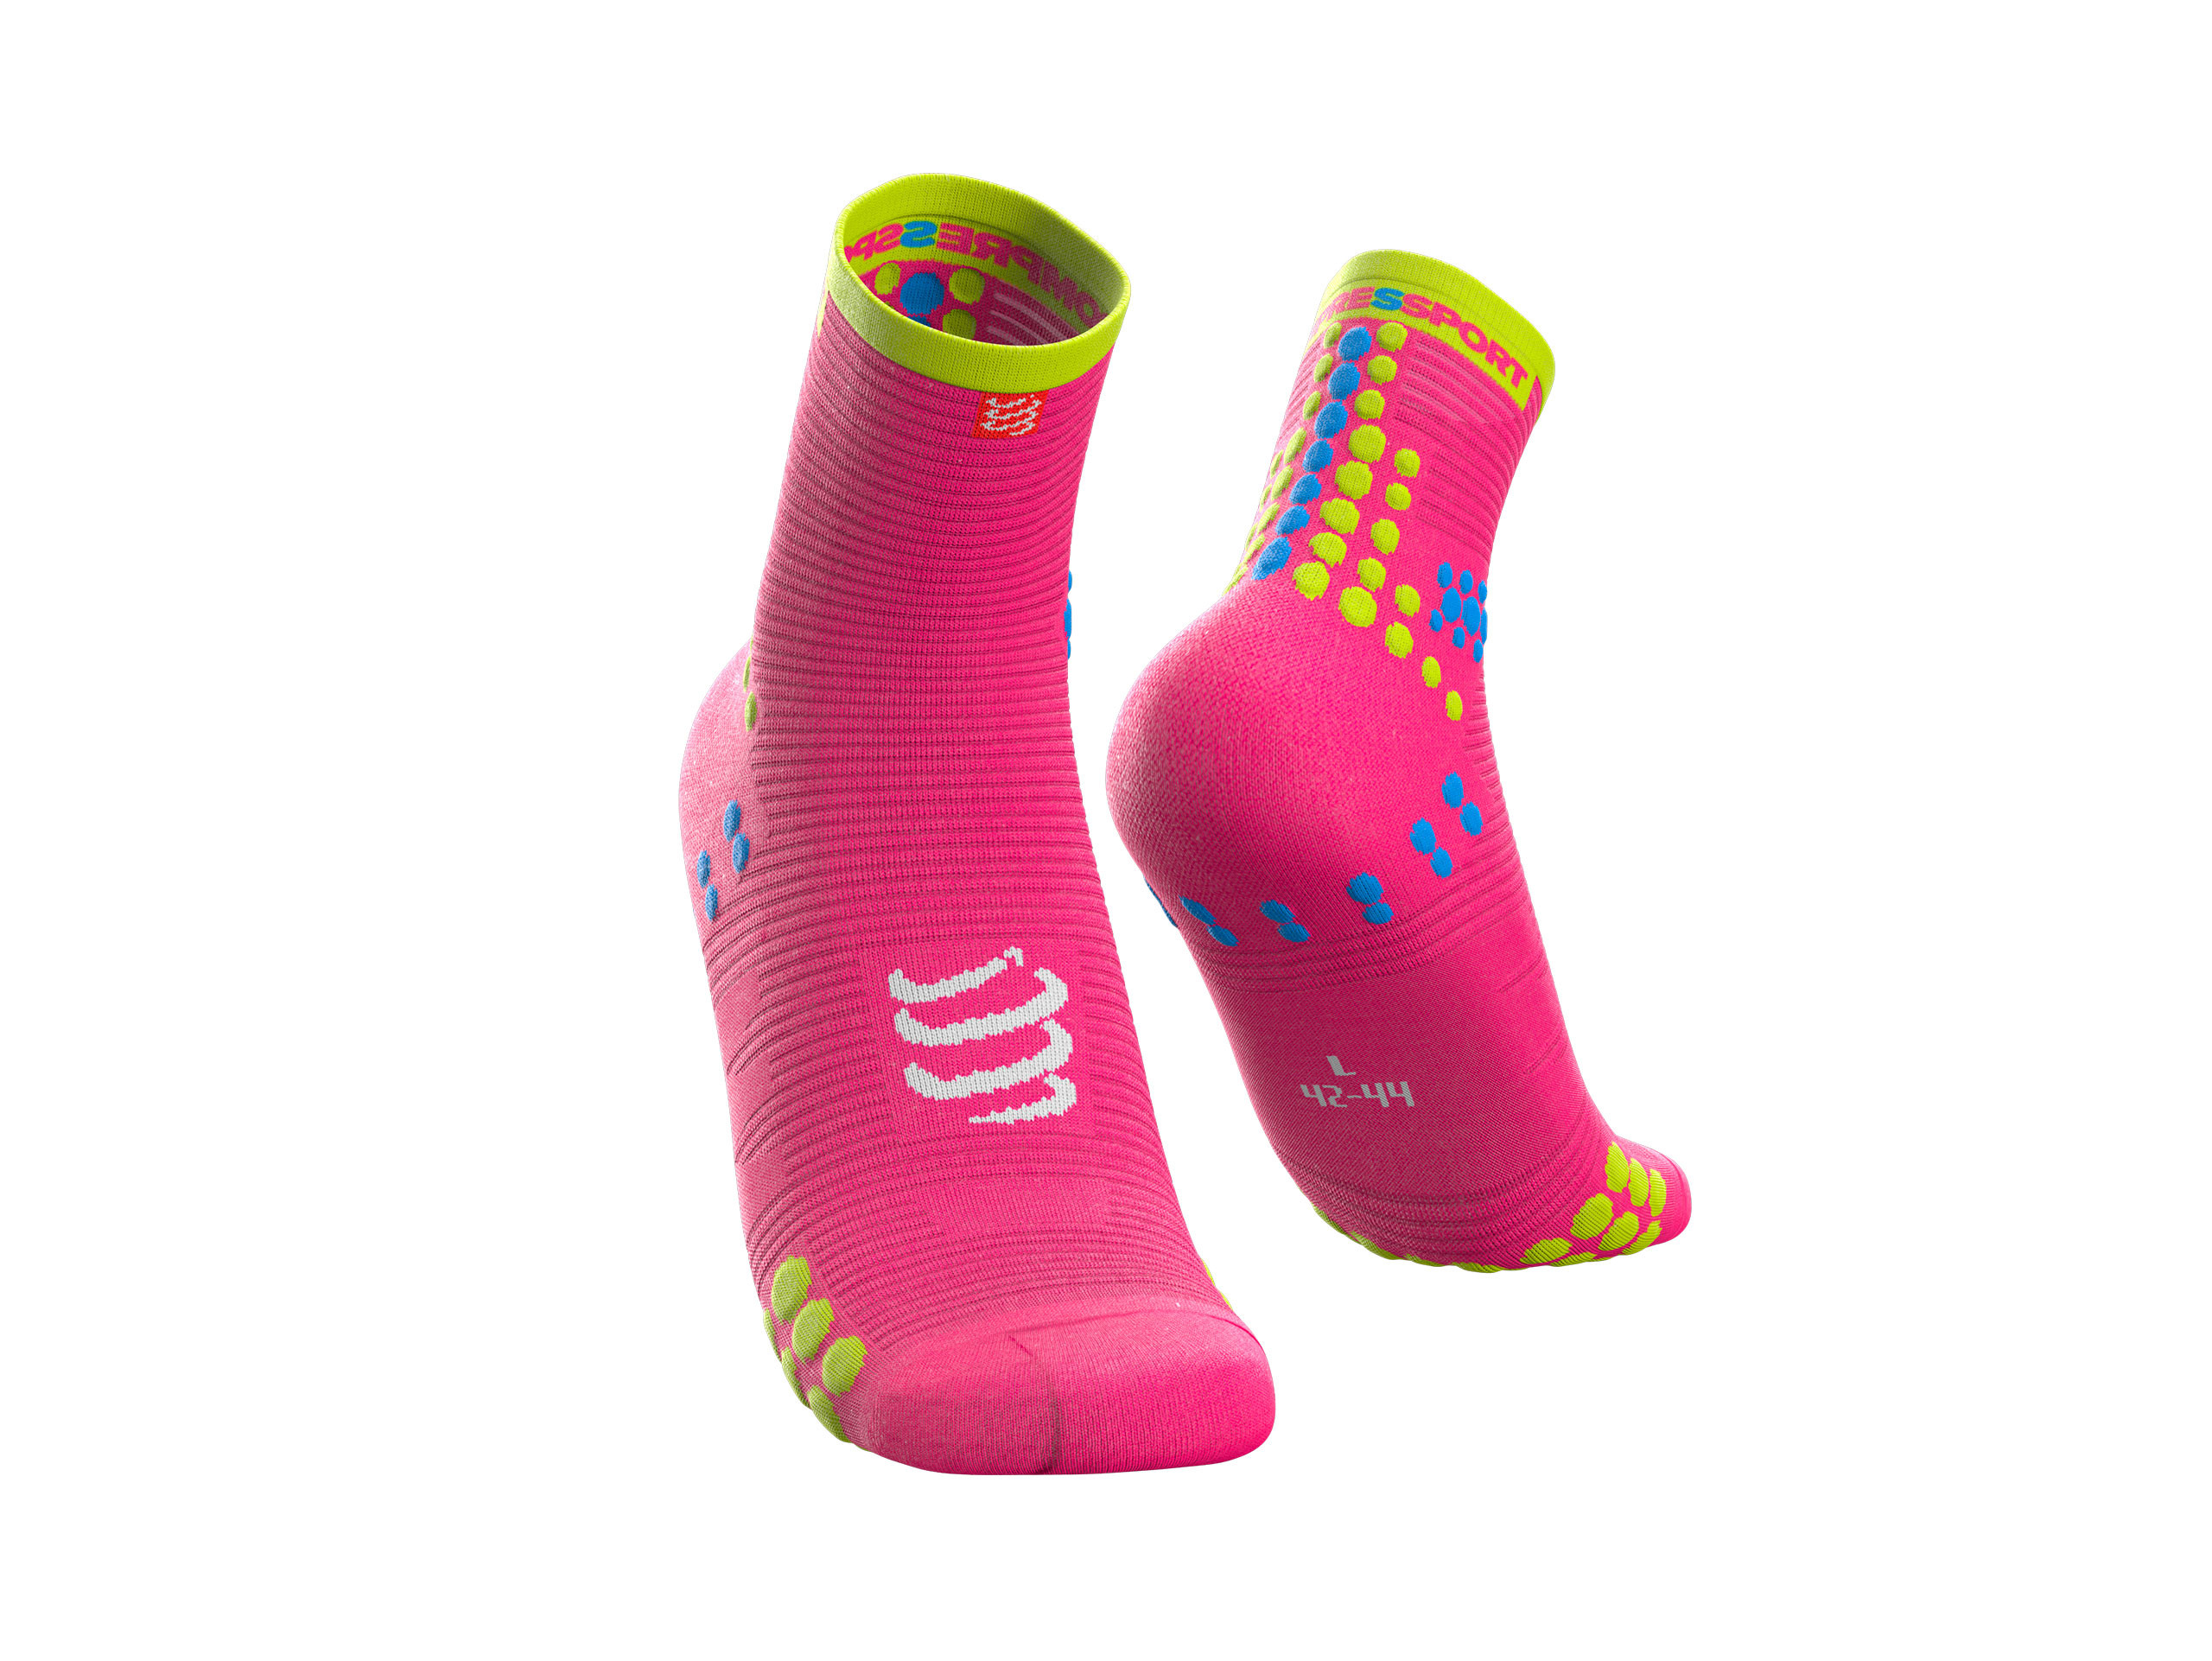 Calzini da gara professionali v3.0 Run High rosa fluo